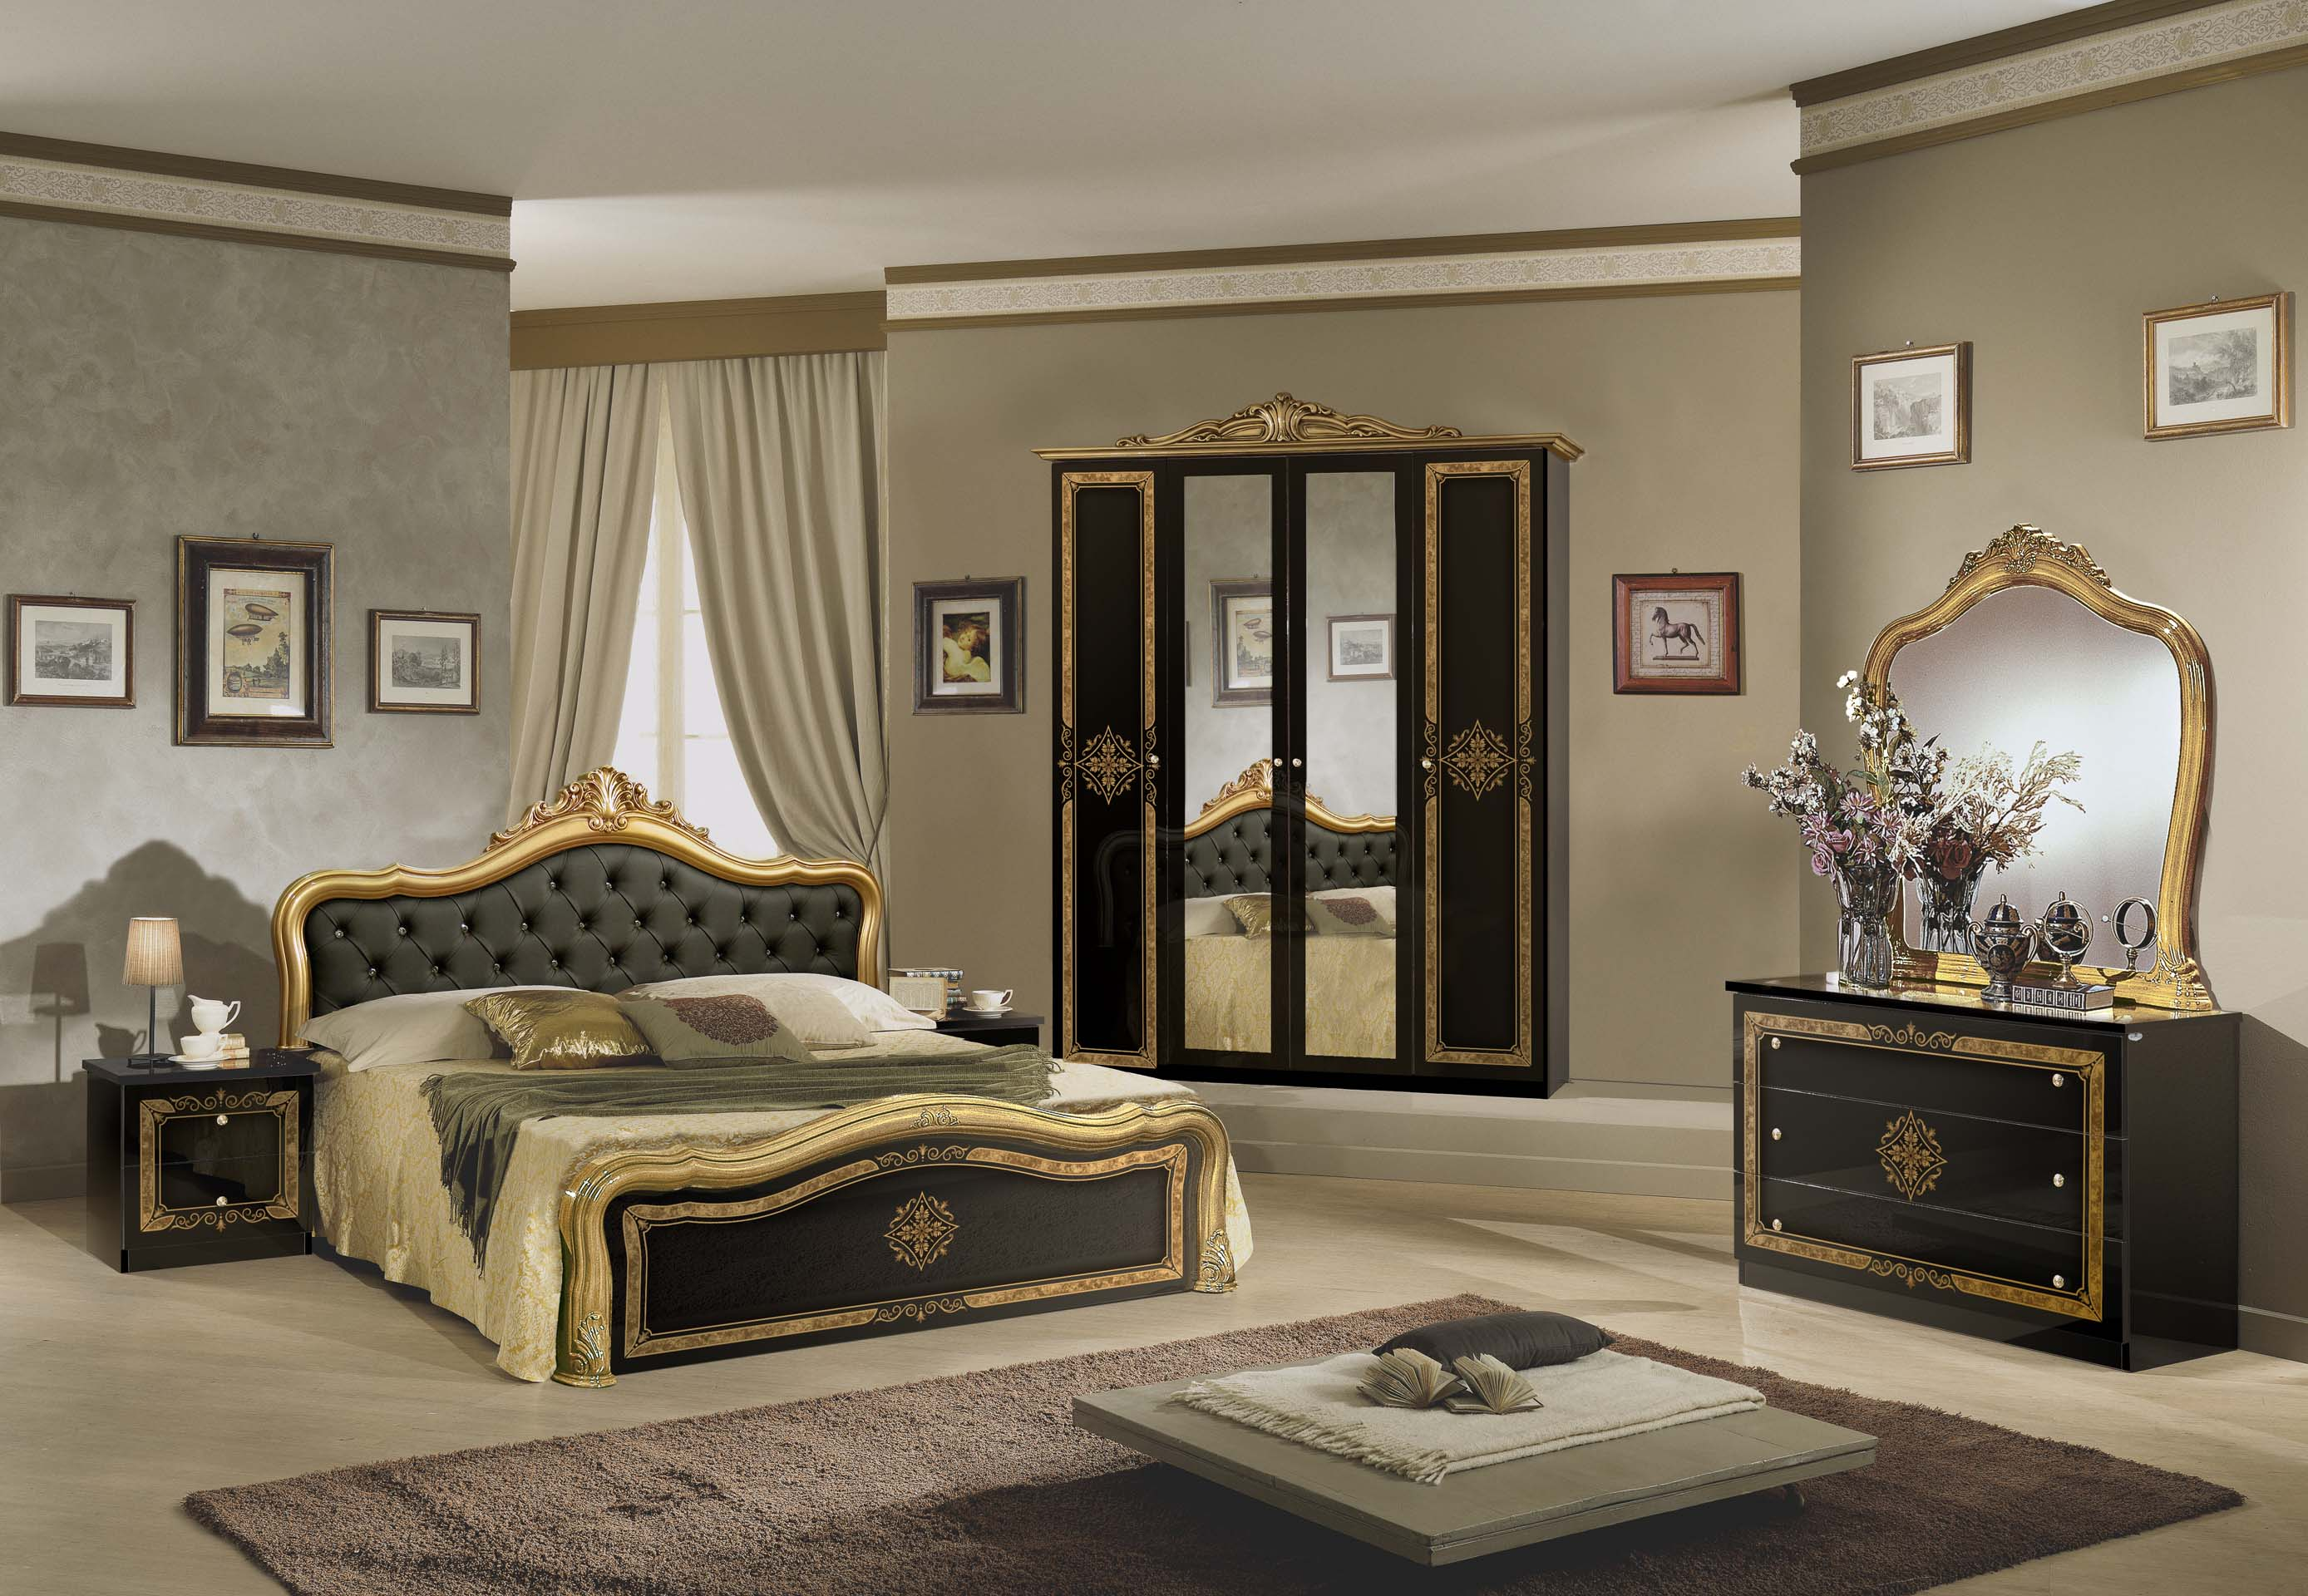 bett lucy in schwarz gold 180 x 200 cm klassisch luxus designer le lu tap nec ng 180. Black Bedroom Furniture Sets. Home Design Ideas